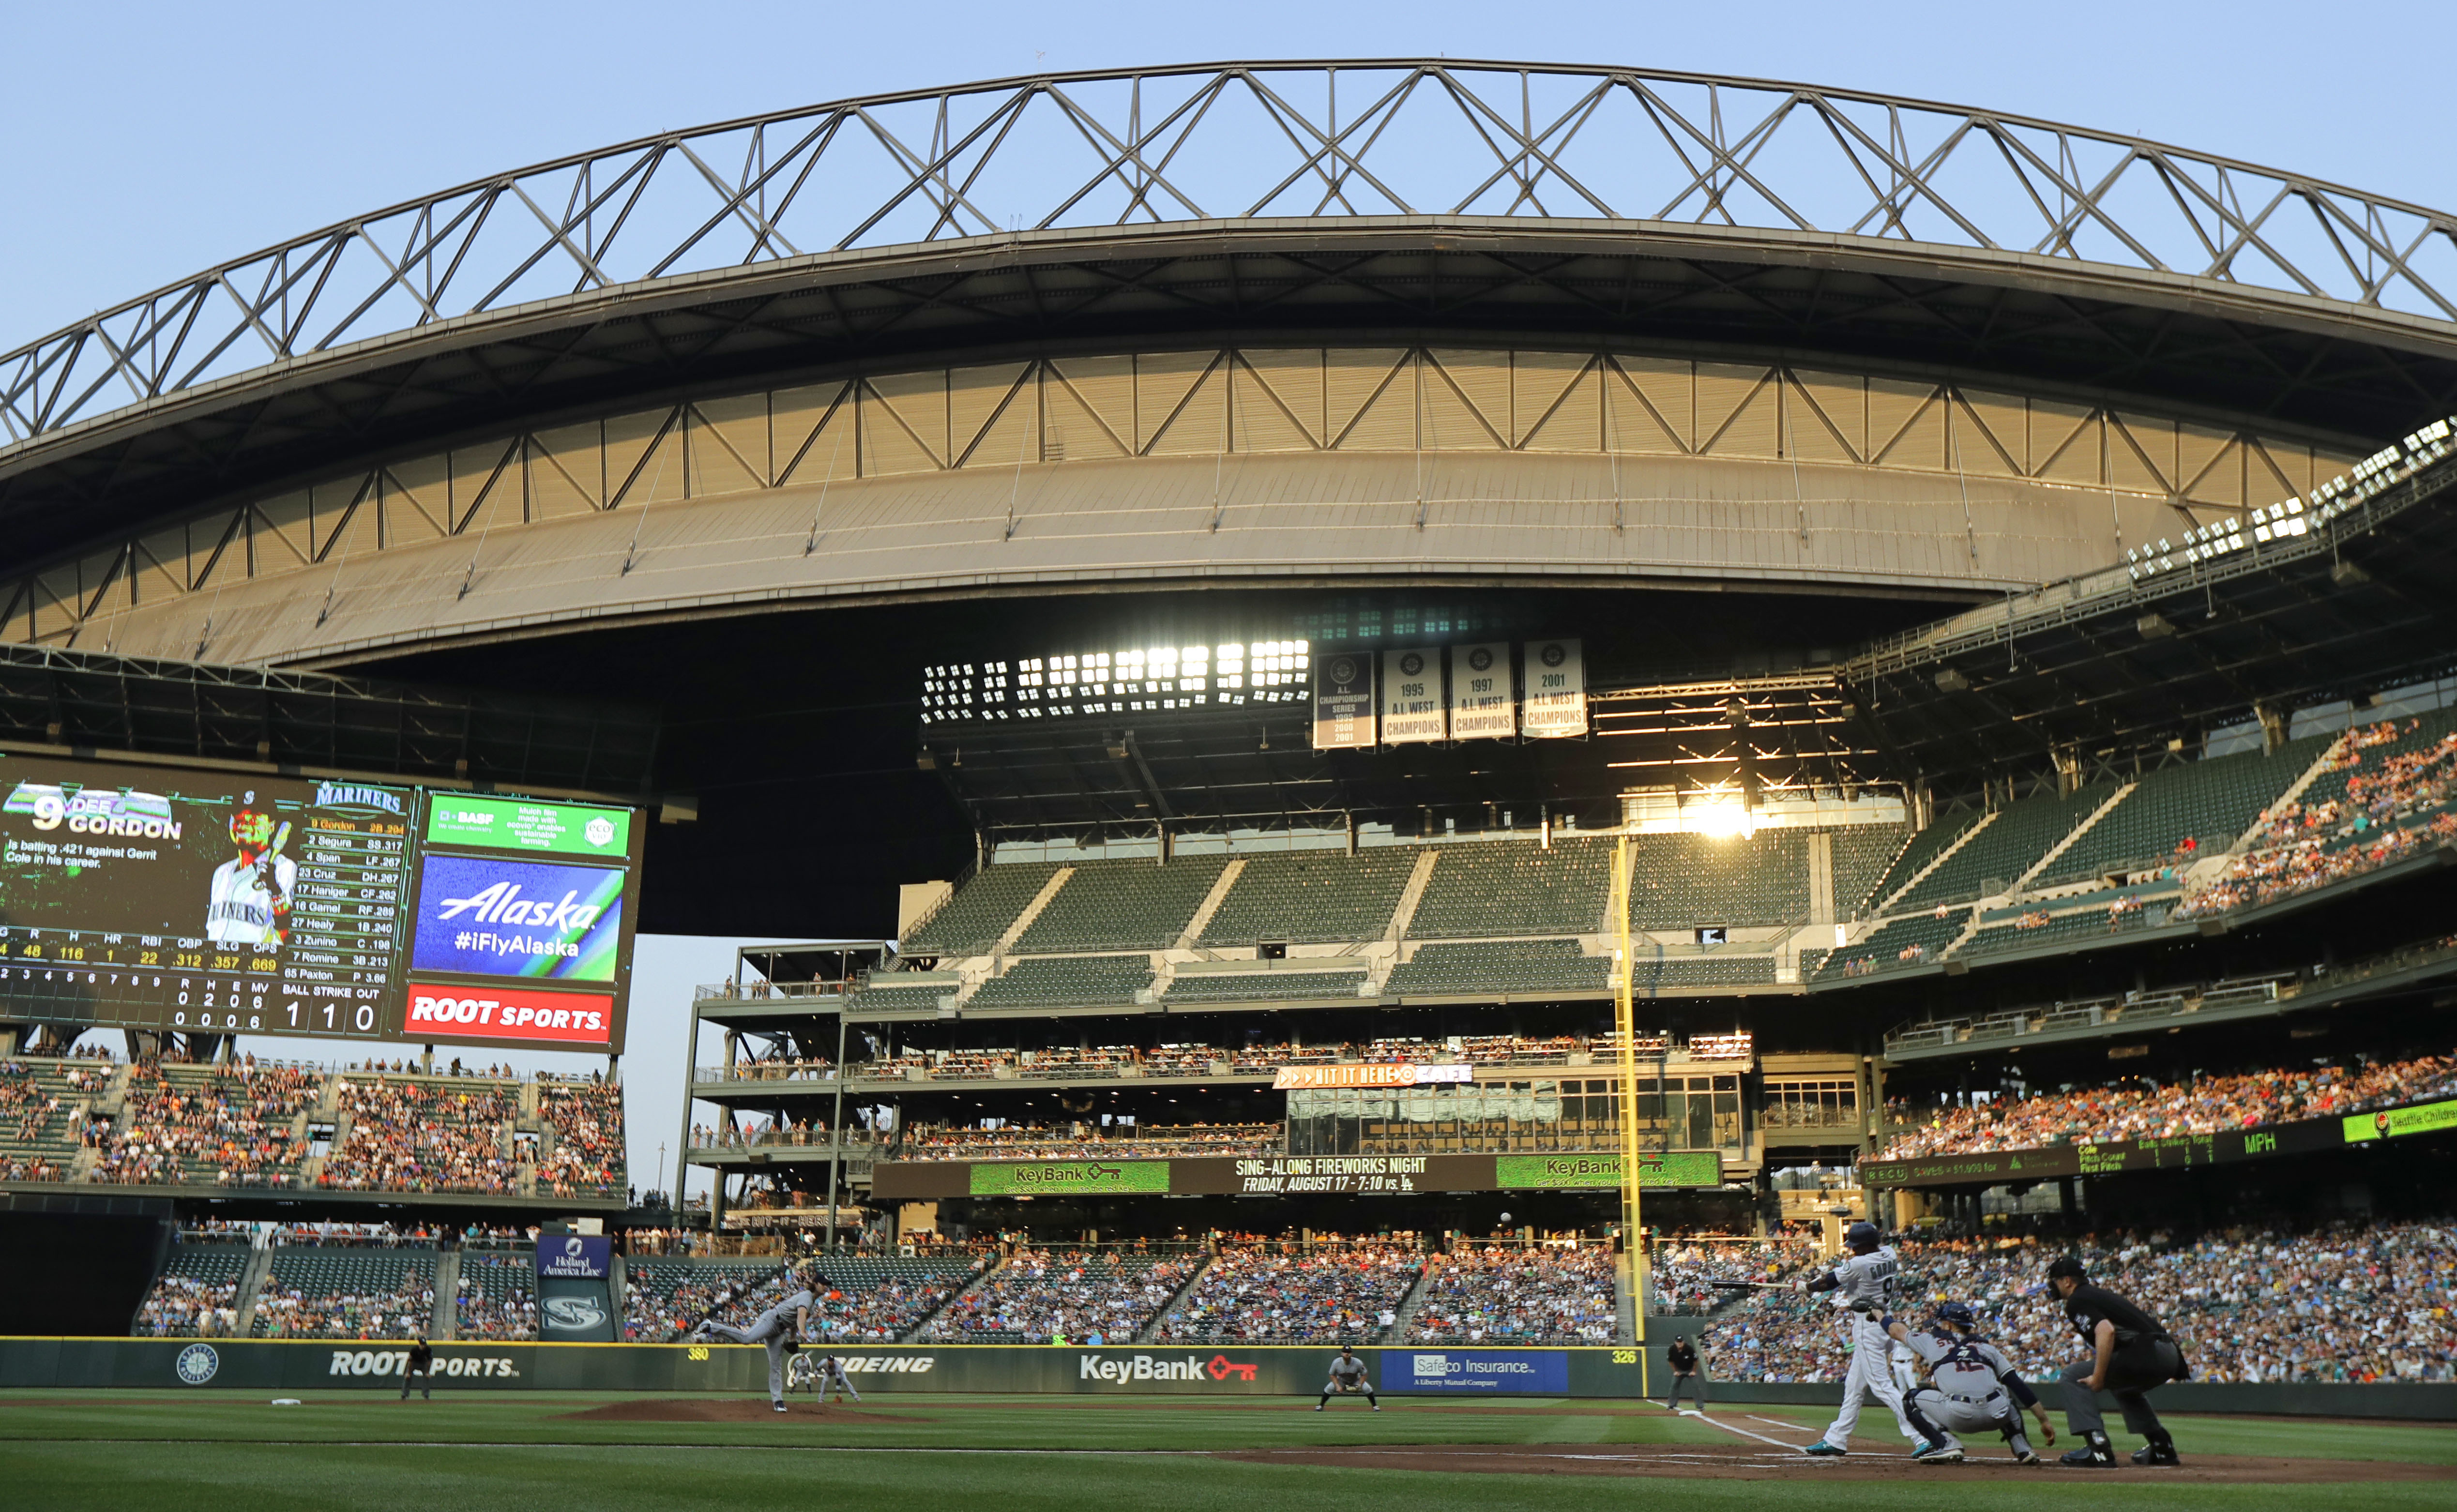 Group pushes ballot measure to repeal Safeco funding | Crosscut